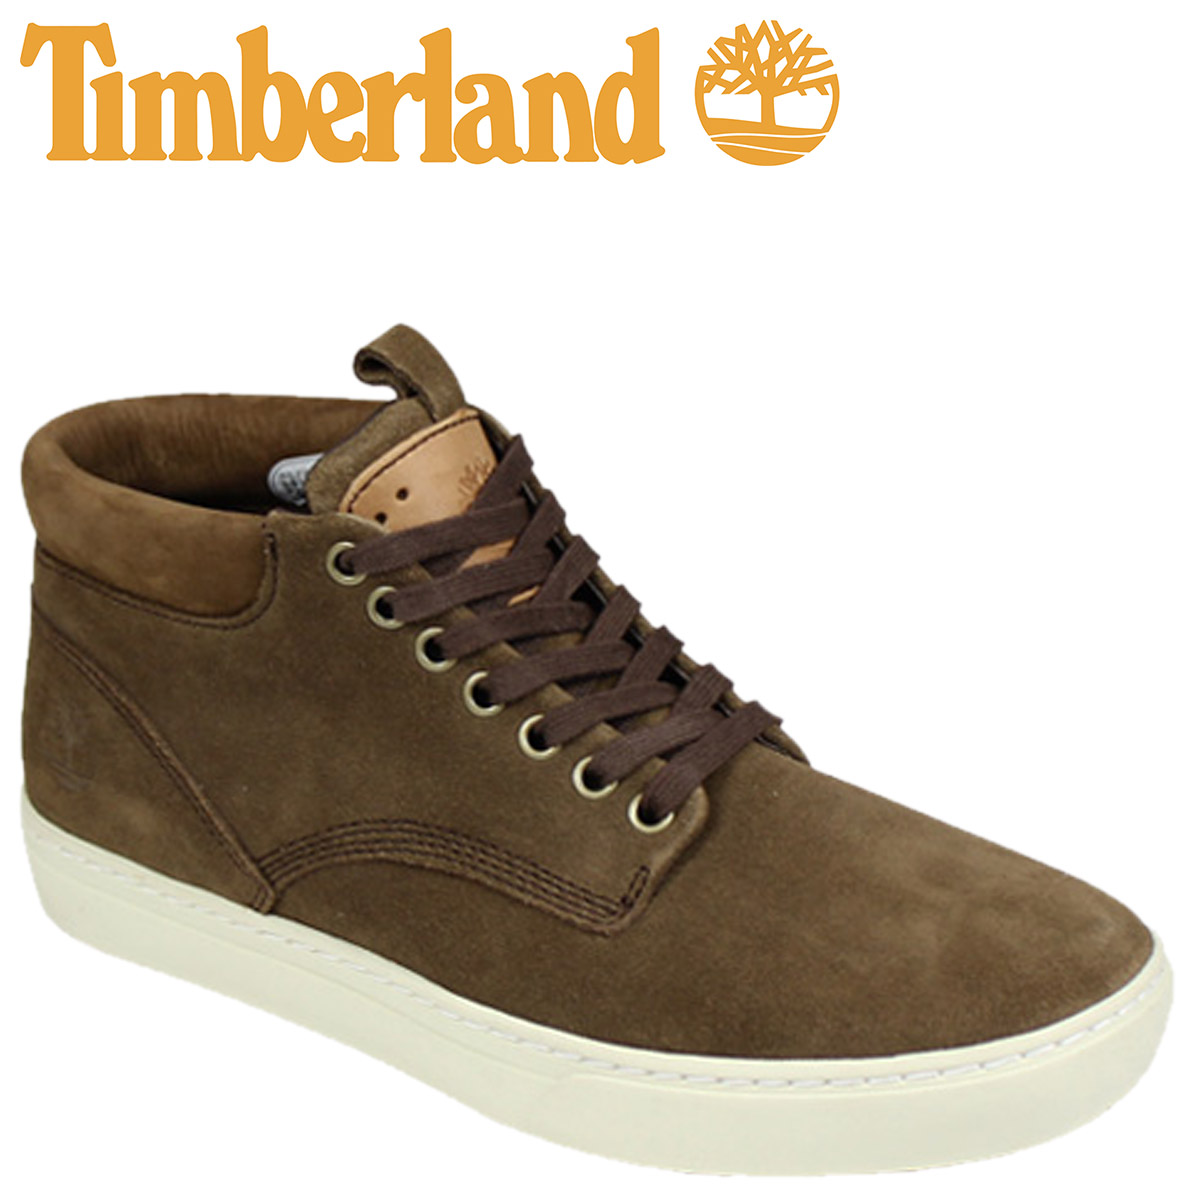 Boot Suede Earthkeepers 2 Boots Cupsole Timberland 3 ChukkabrownEarth カップソール New Keepers Mens 5635r4 0 8wXnOP0k